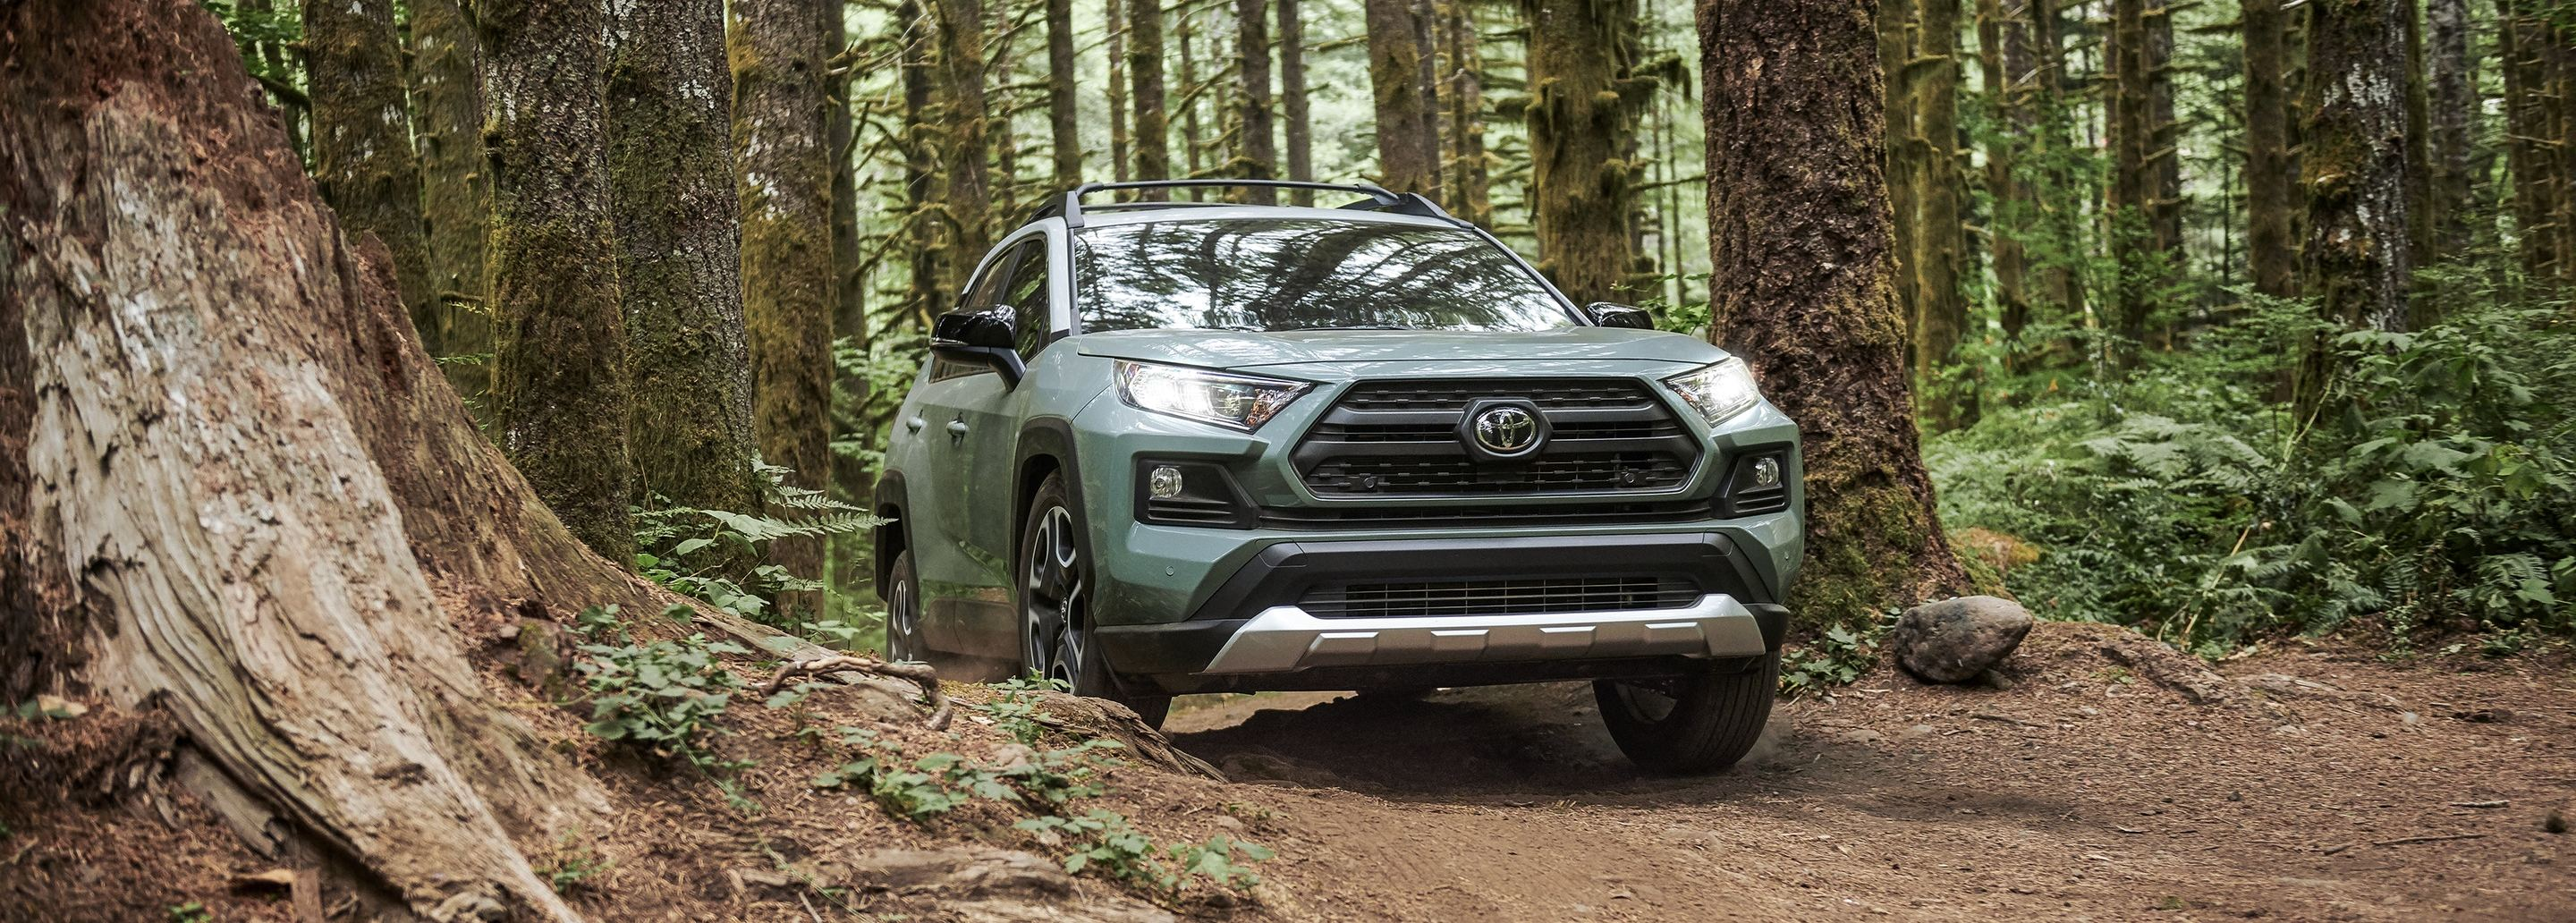 2020 Toyota RAV4 Trim Levels in Cookeville, TN